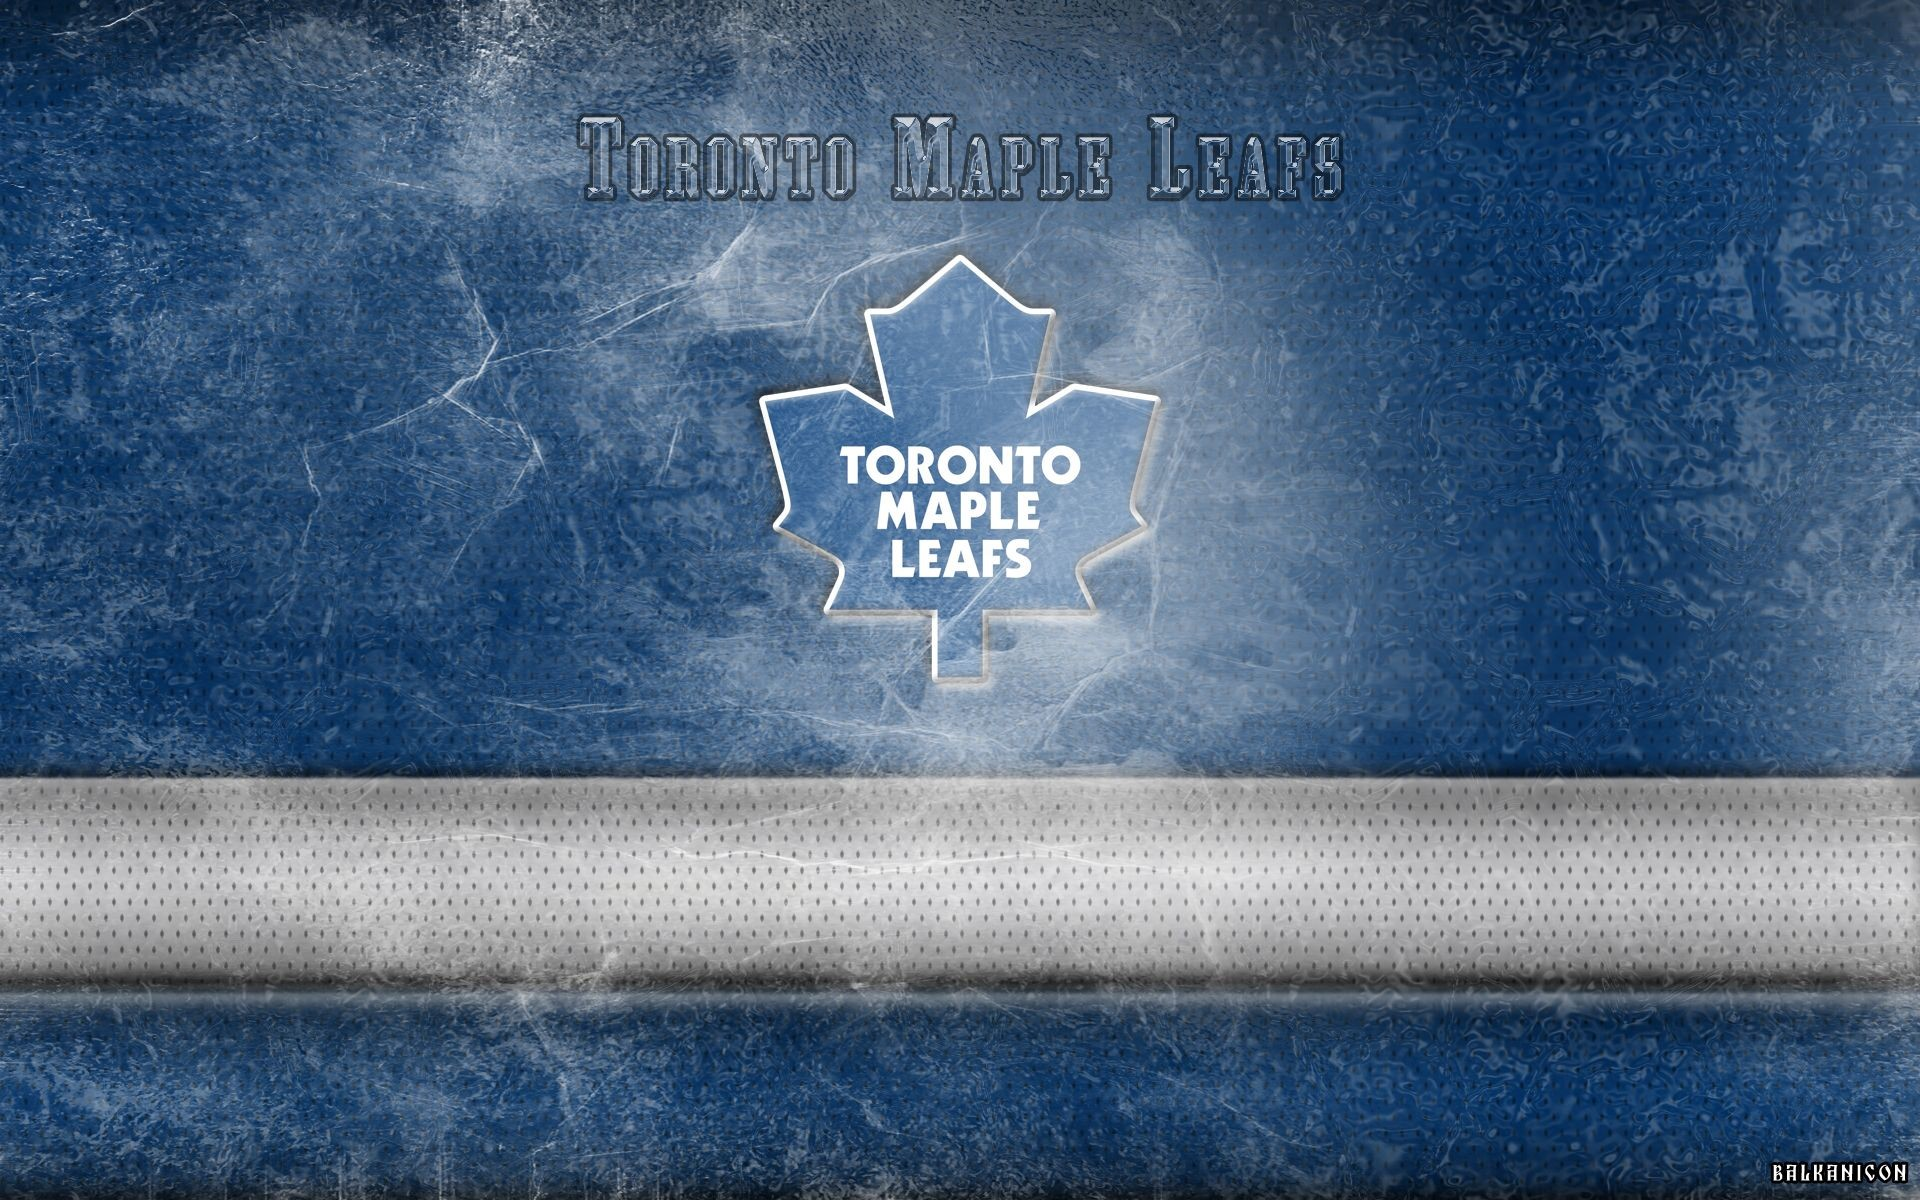 1920x1200 Toronto Maple Leafs wallpaper by Balkanicon on DeviantArt